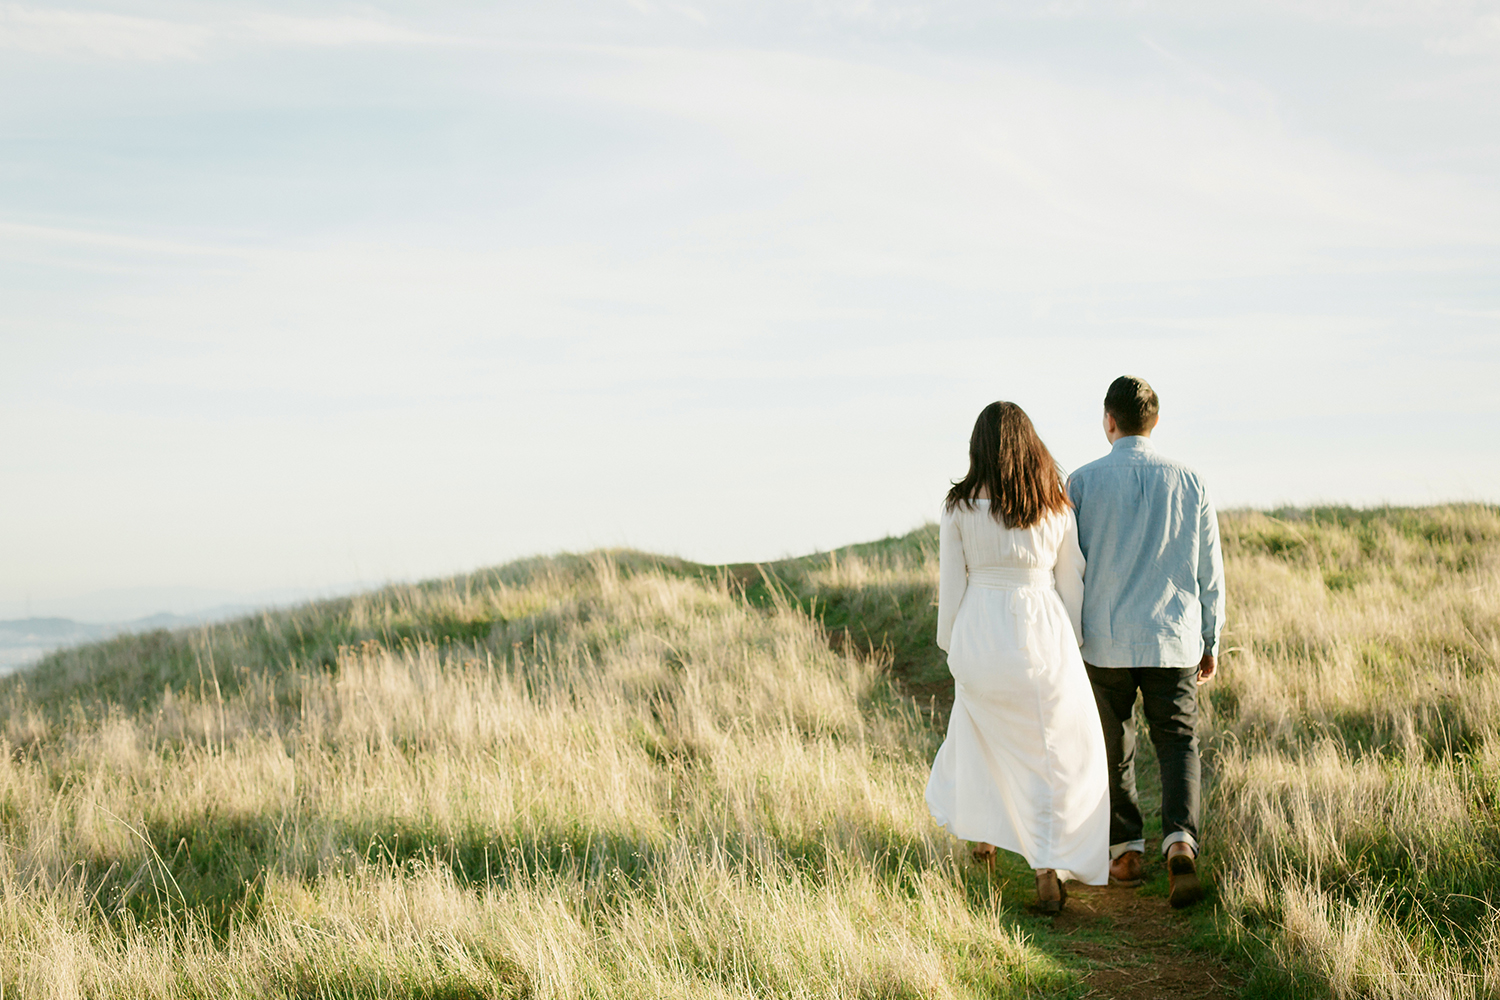 Couple walking together during their engagement session in Mount Tamalpais in Marin, California.